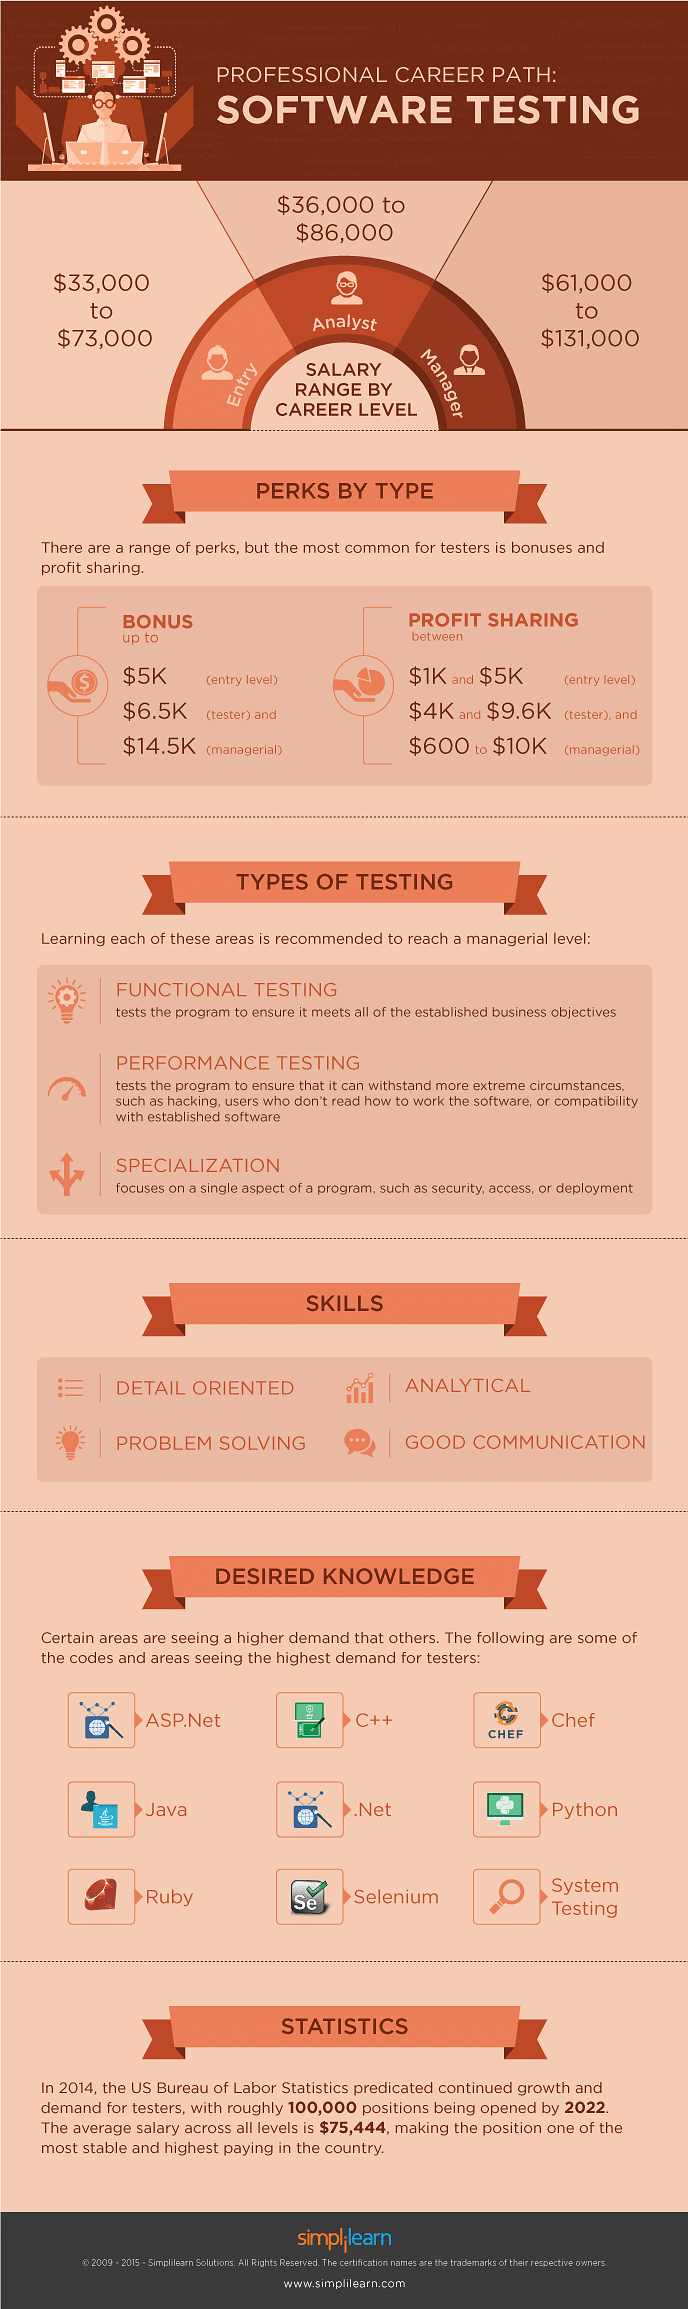 Testing Your Way To Success: How To Build A Career In Software Testing